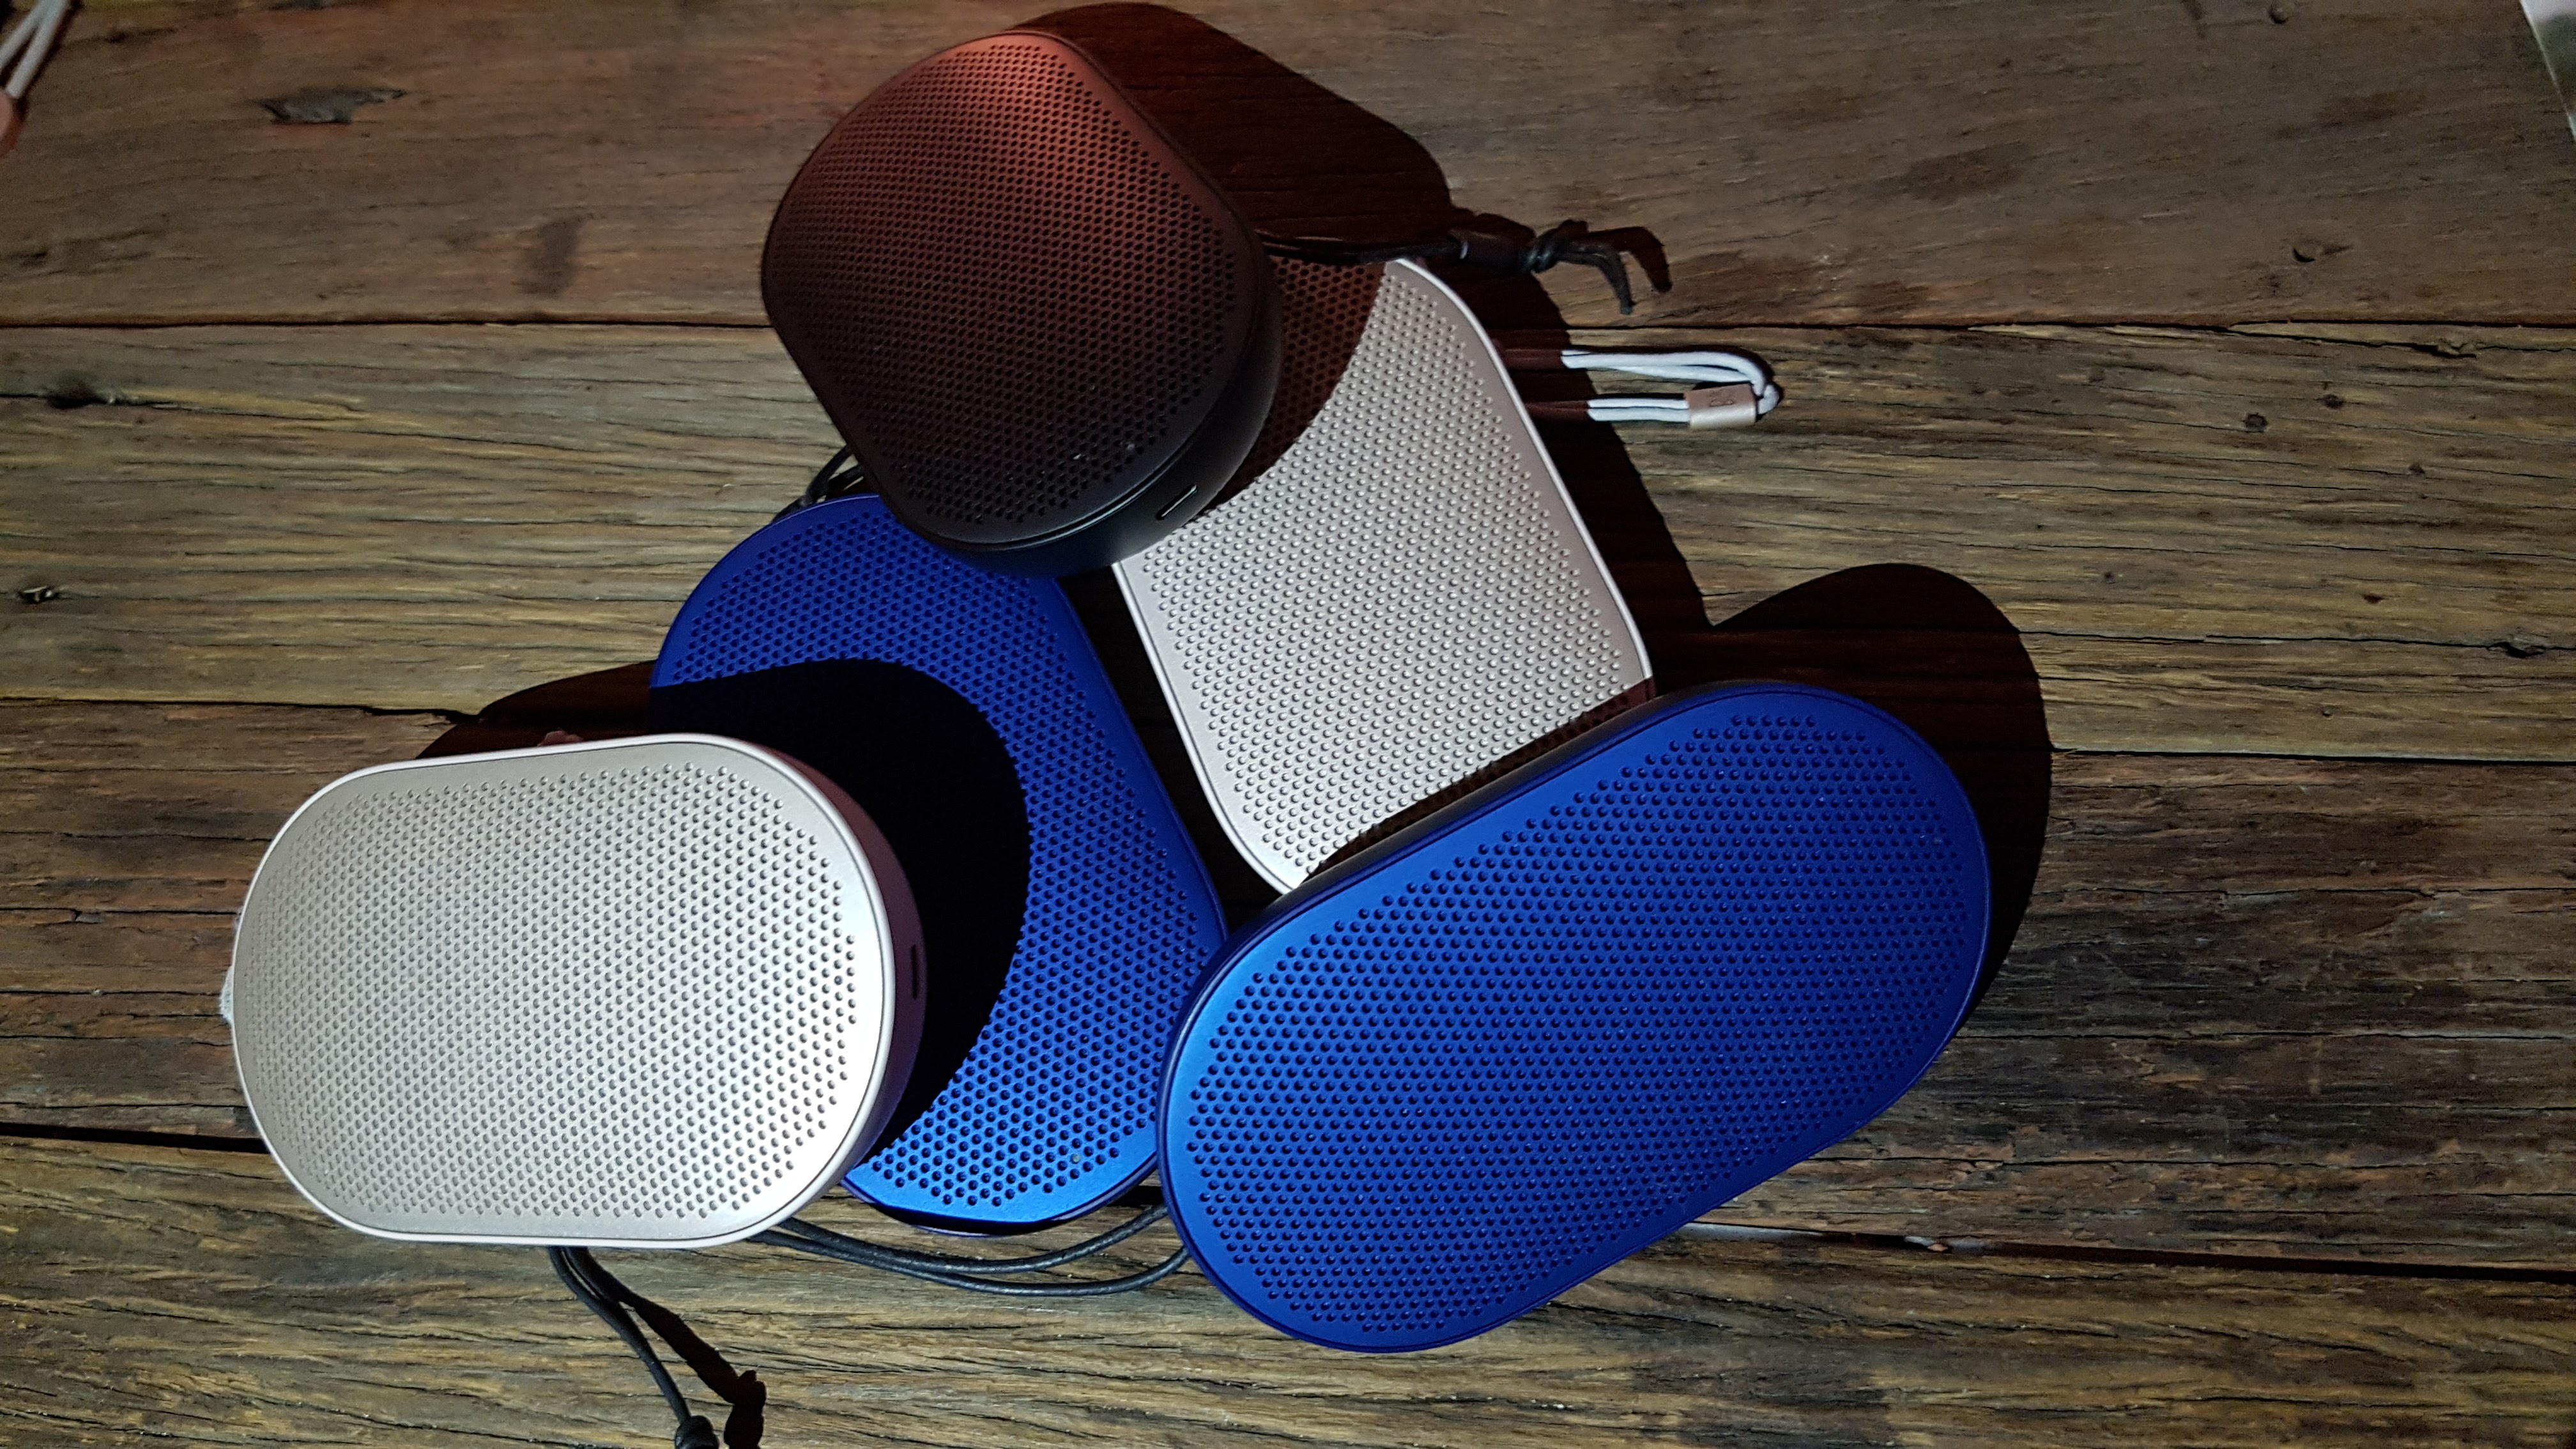 Bang & Olufsen intros Beoplay P2 Bluetooth speaker, palm-sized yet powerful